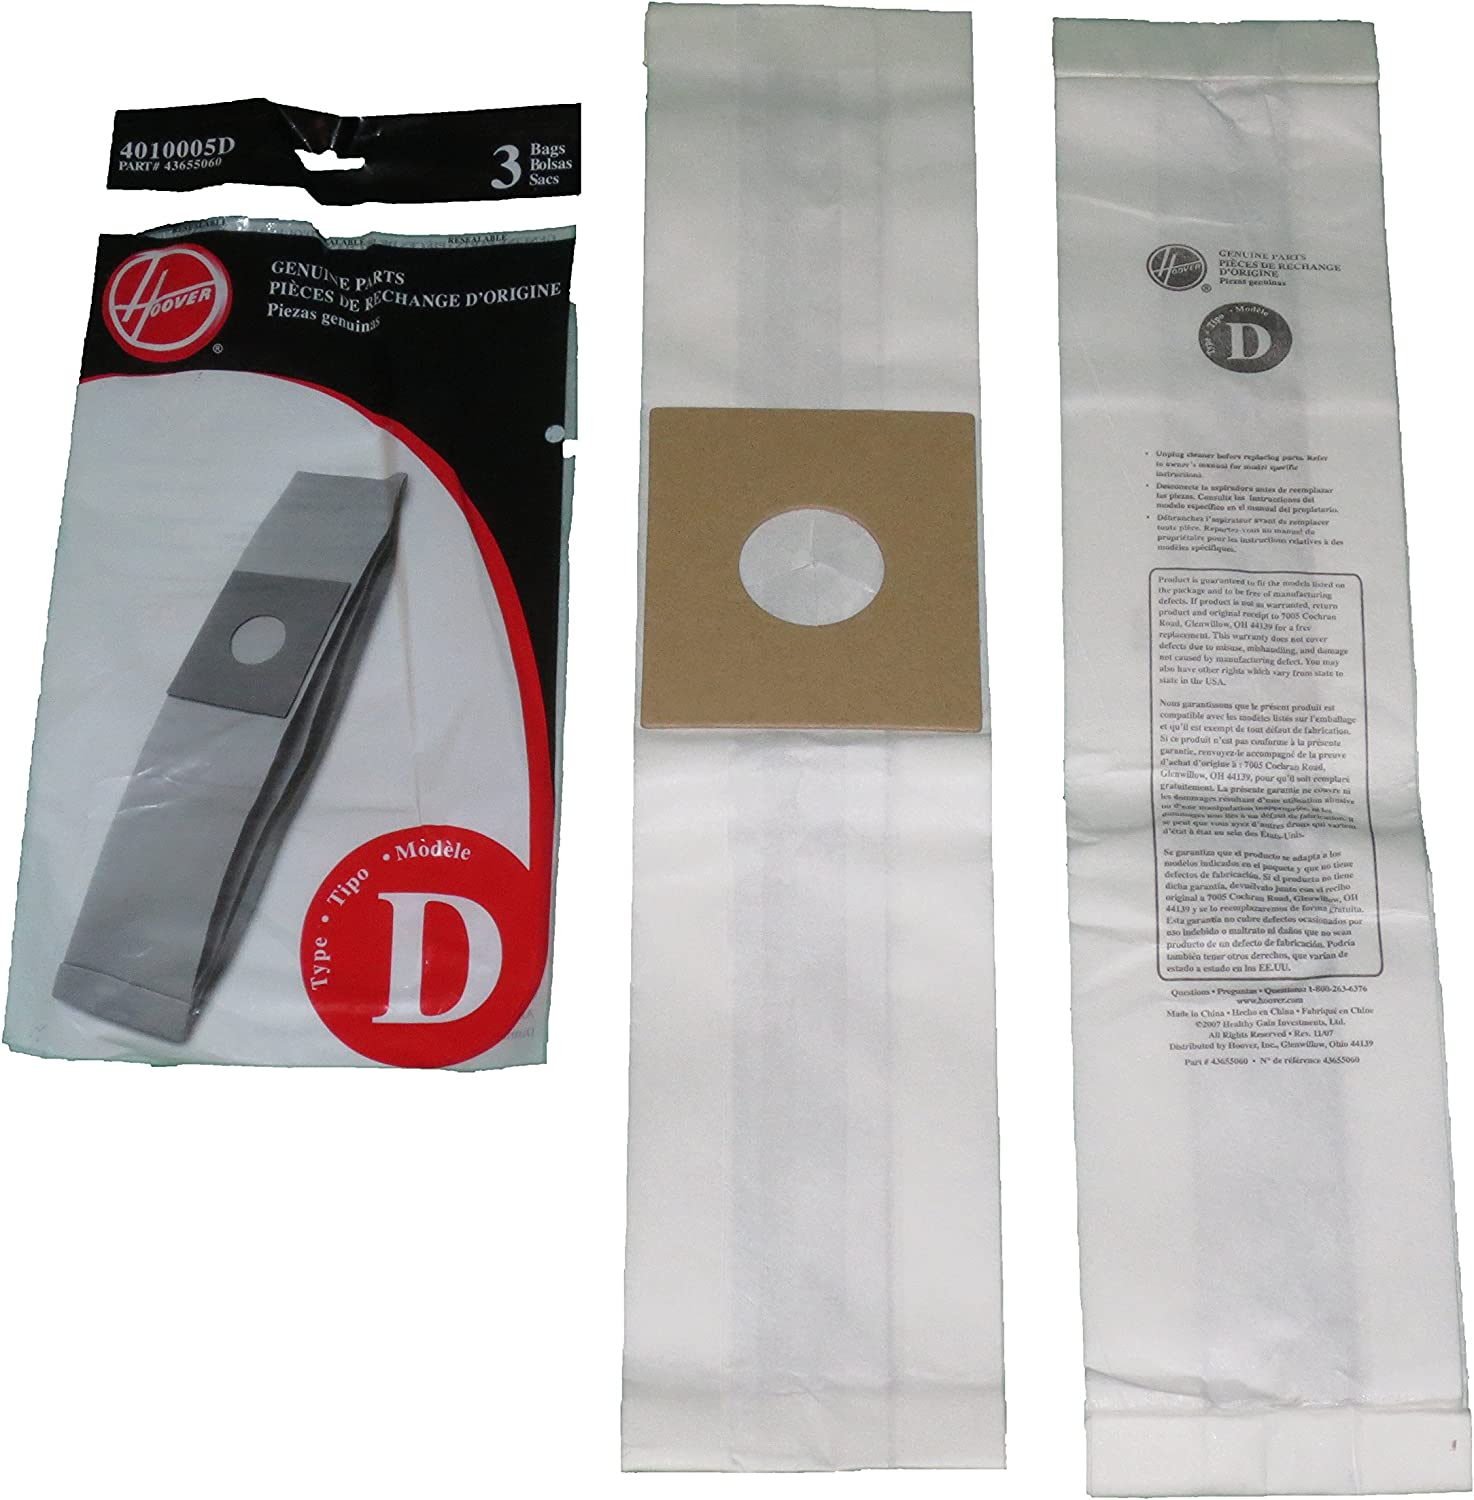 Hoover Type D Vac Cleaner Bag